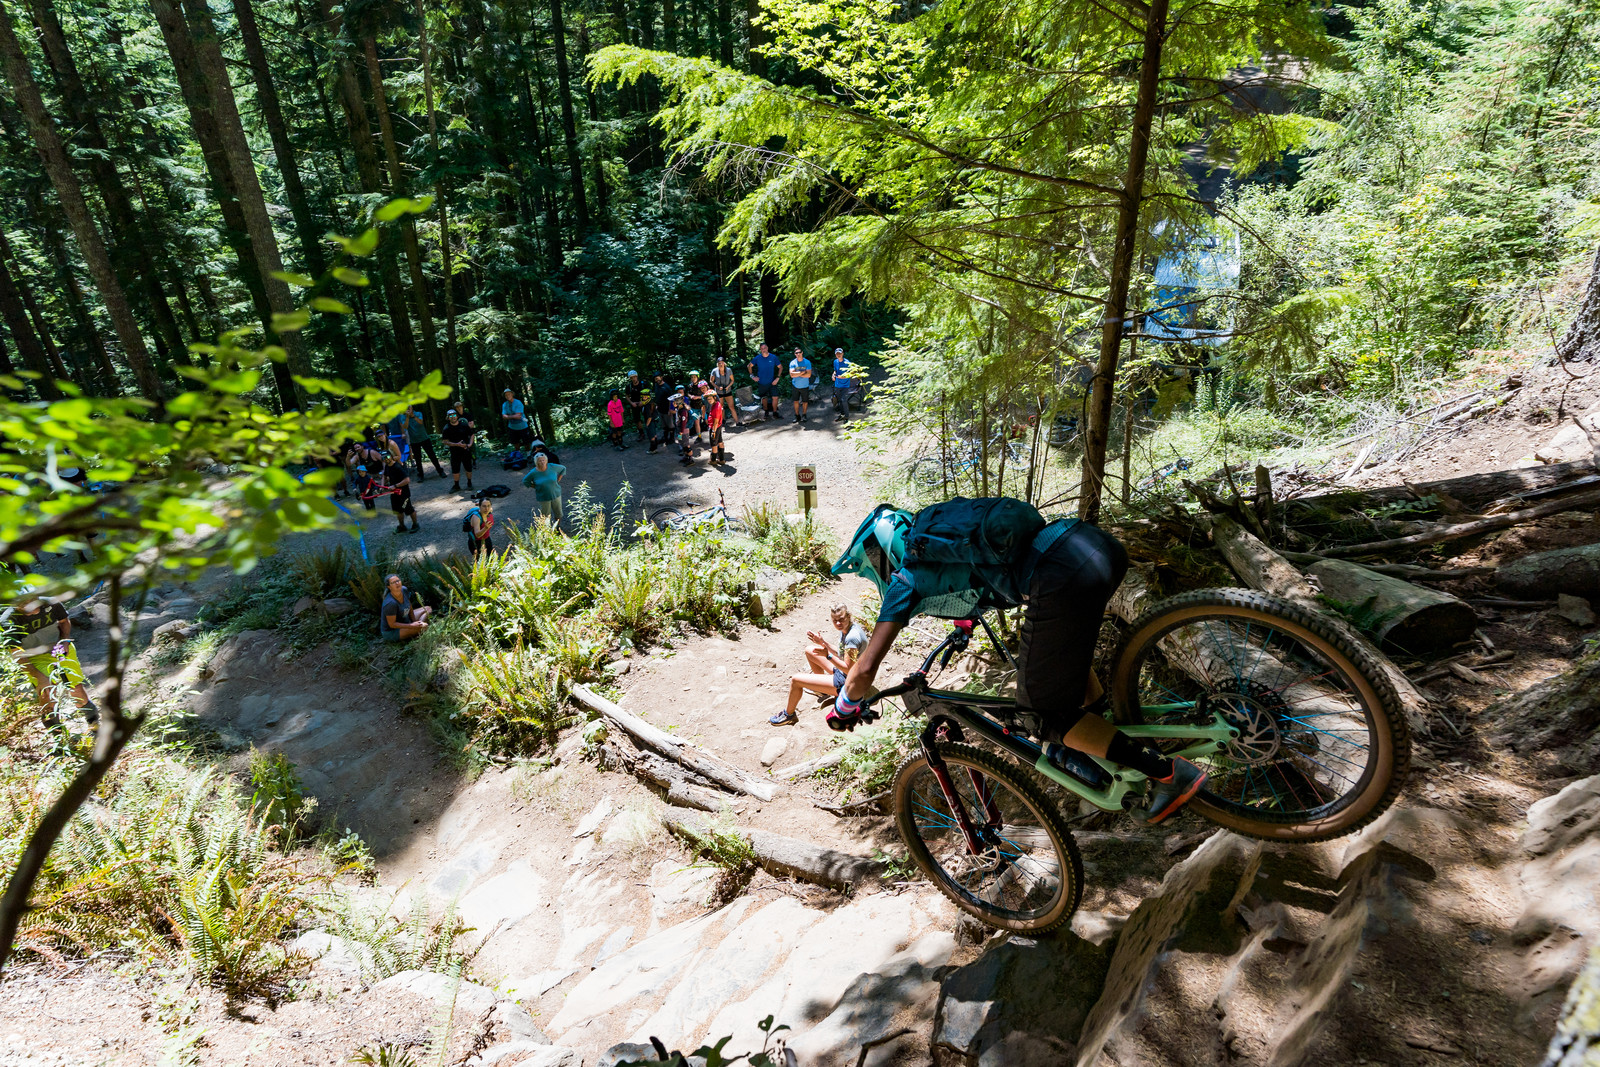 Andi Zolton charging the steep rock roll of Predator to 3rd in Pro Women